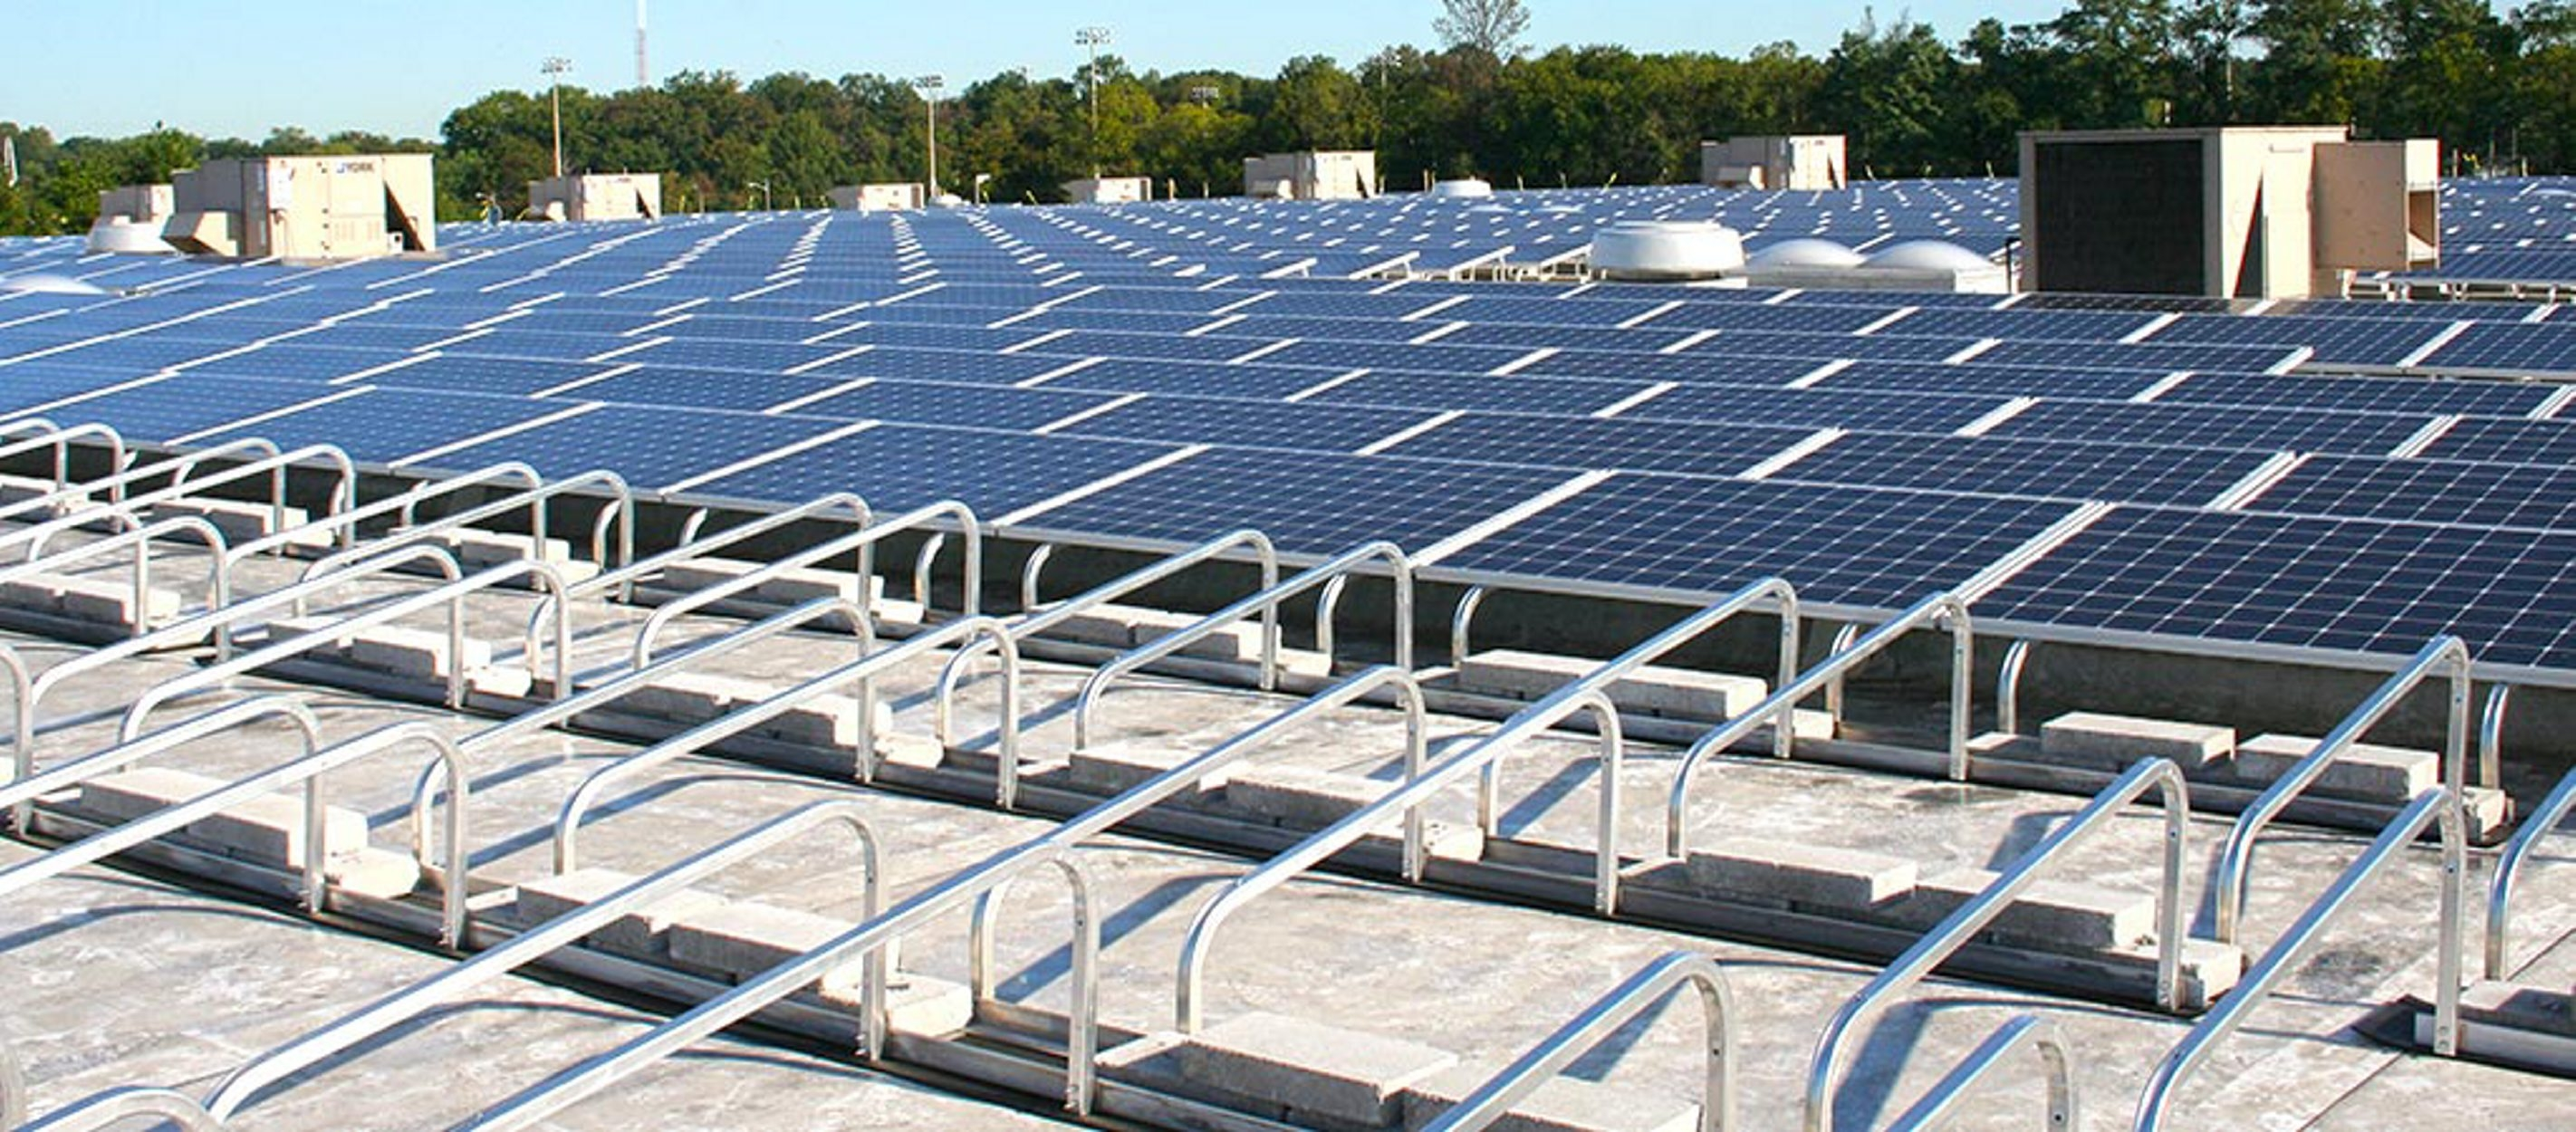 """RBI Solar of Cincinnati manufactures racking systems for mounting solar panels to roofs. RBI has a 5.5 percent share of that market.    """"Acquiring RBI is an important step in the transformation of Gibraltar into a company with a higher rate of growth and best-in-class financial metrics.""""    Gibraltar CEO Frank Heard"""